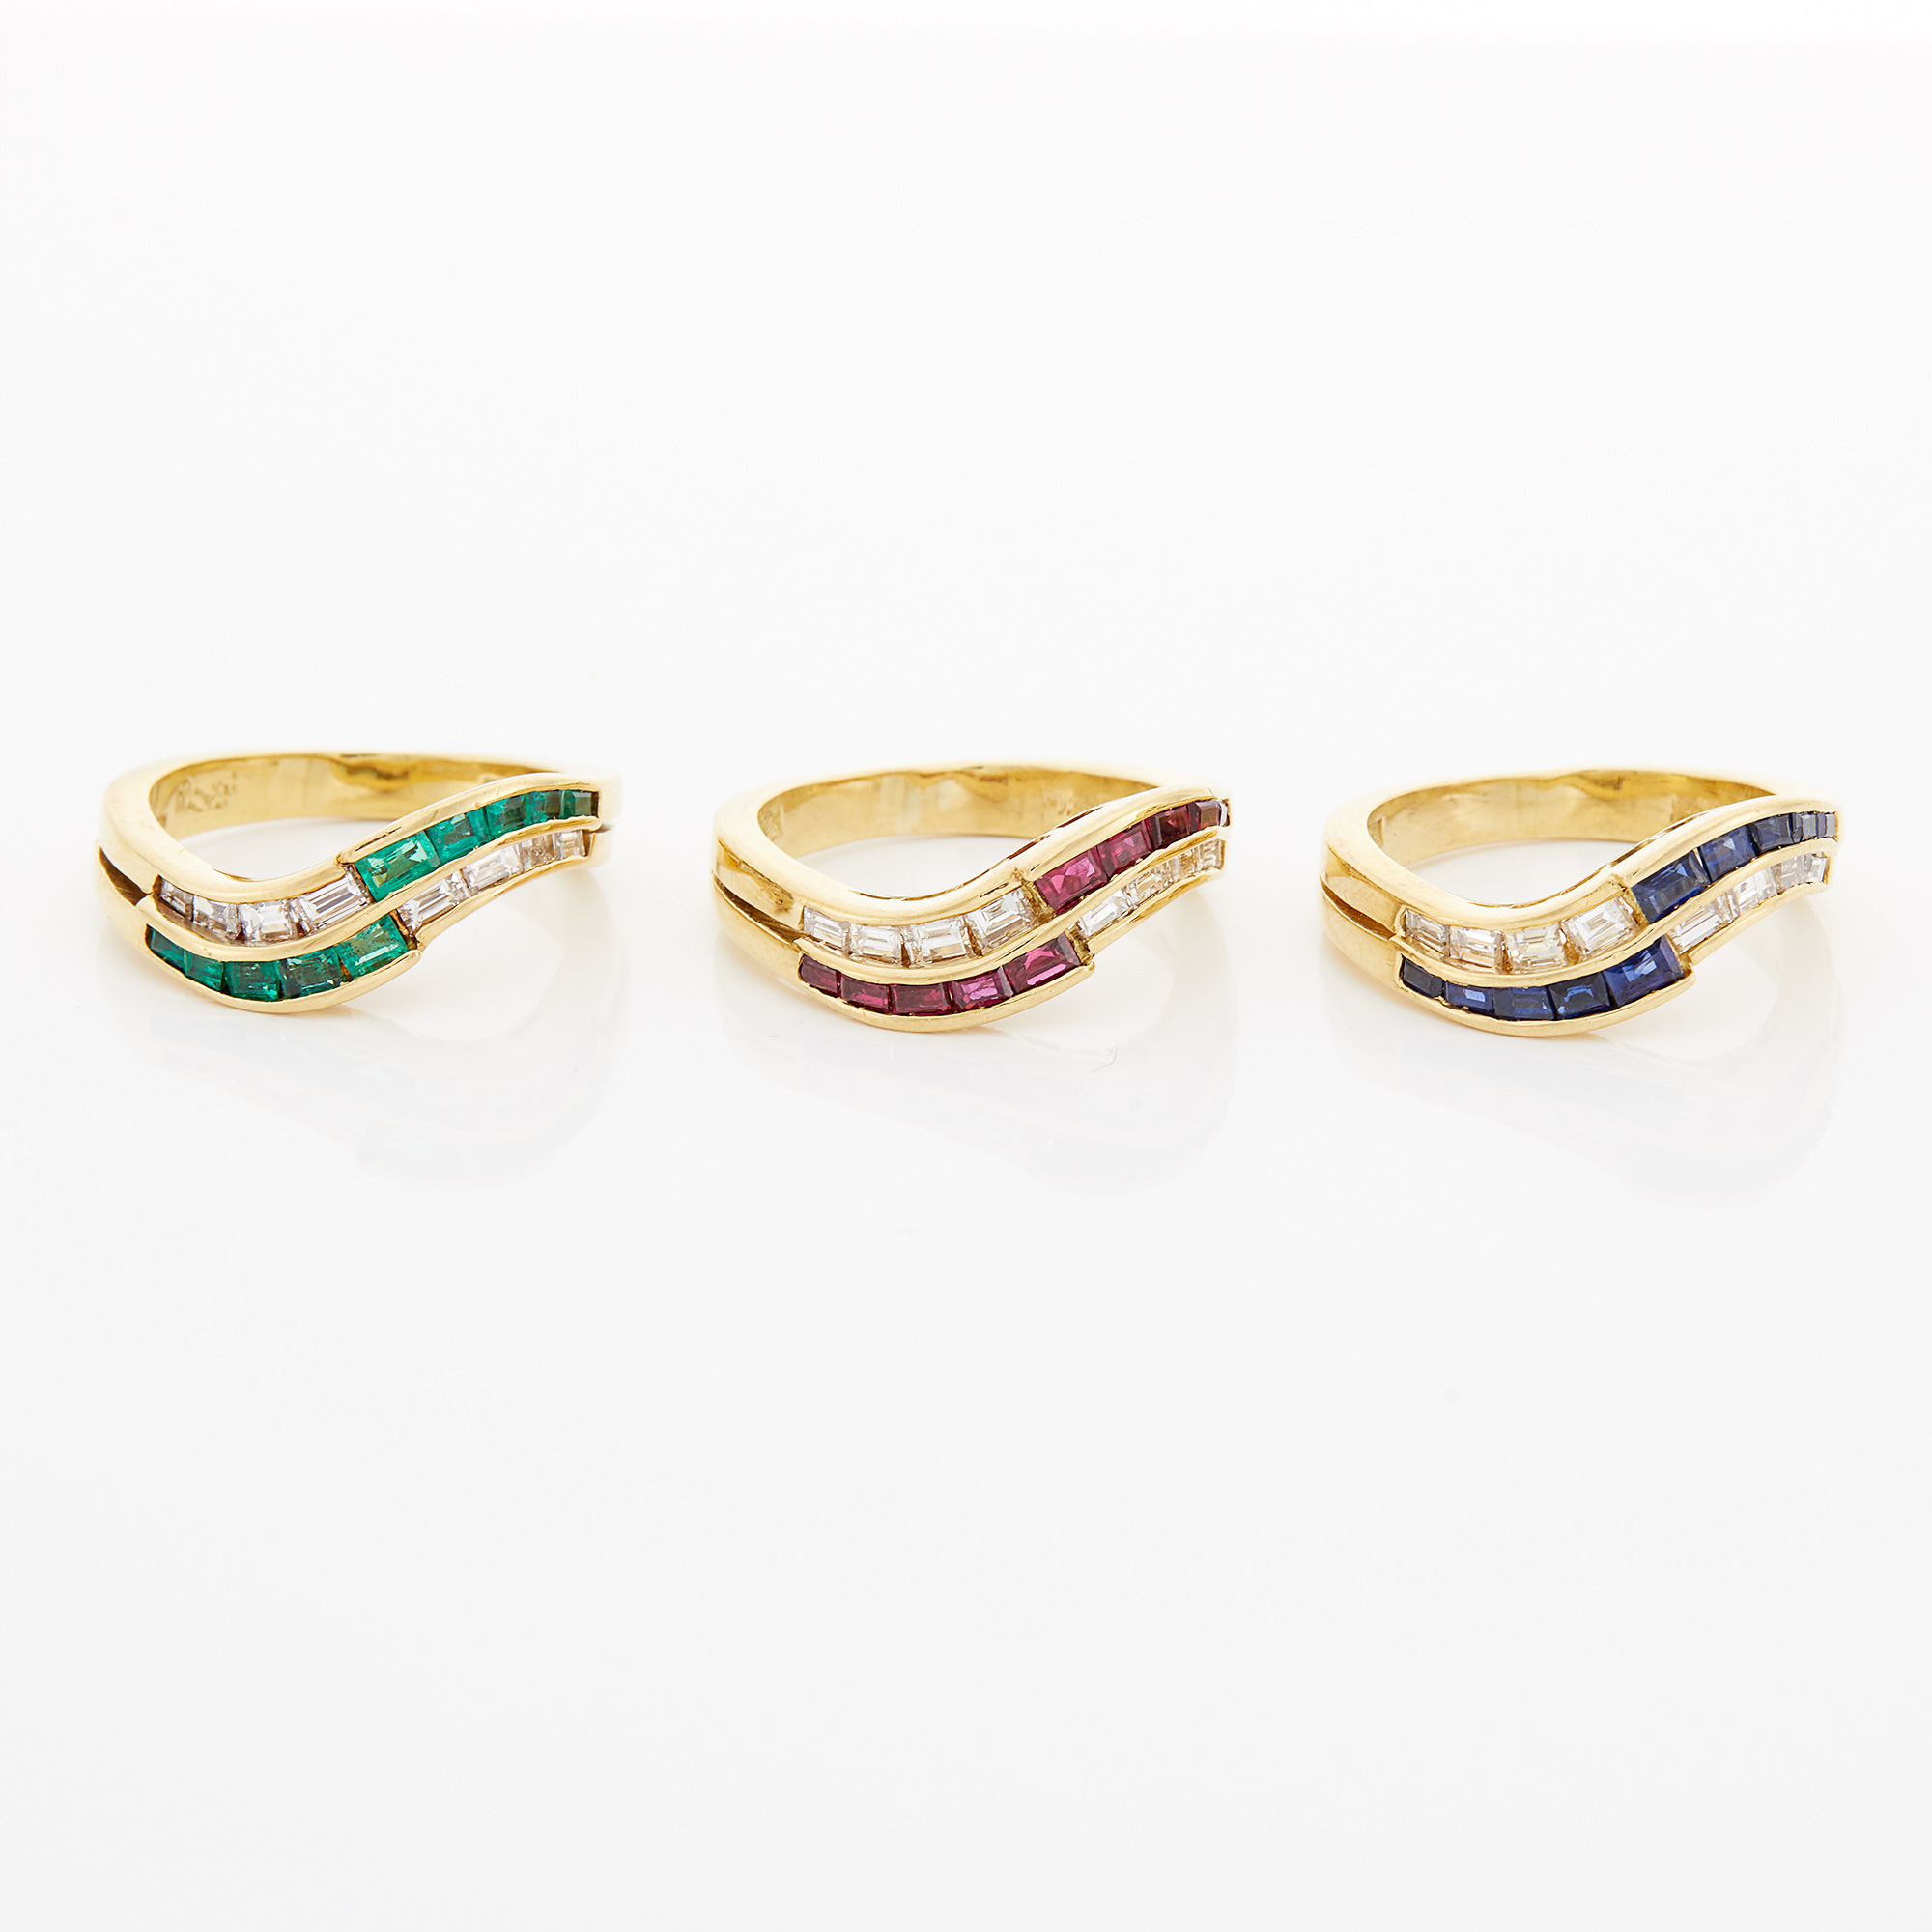 Lot image - Three Gold, Diamond and Colored Stone Stacking Rings, Damiani